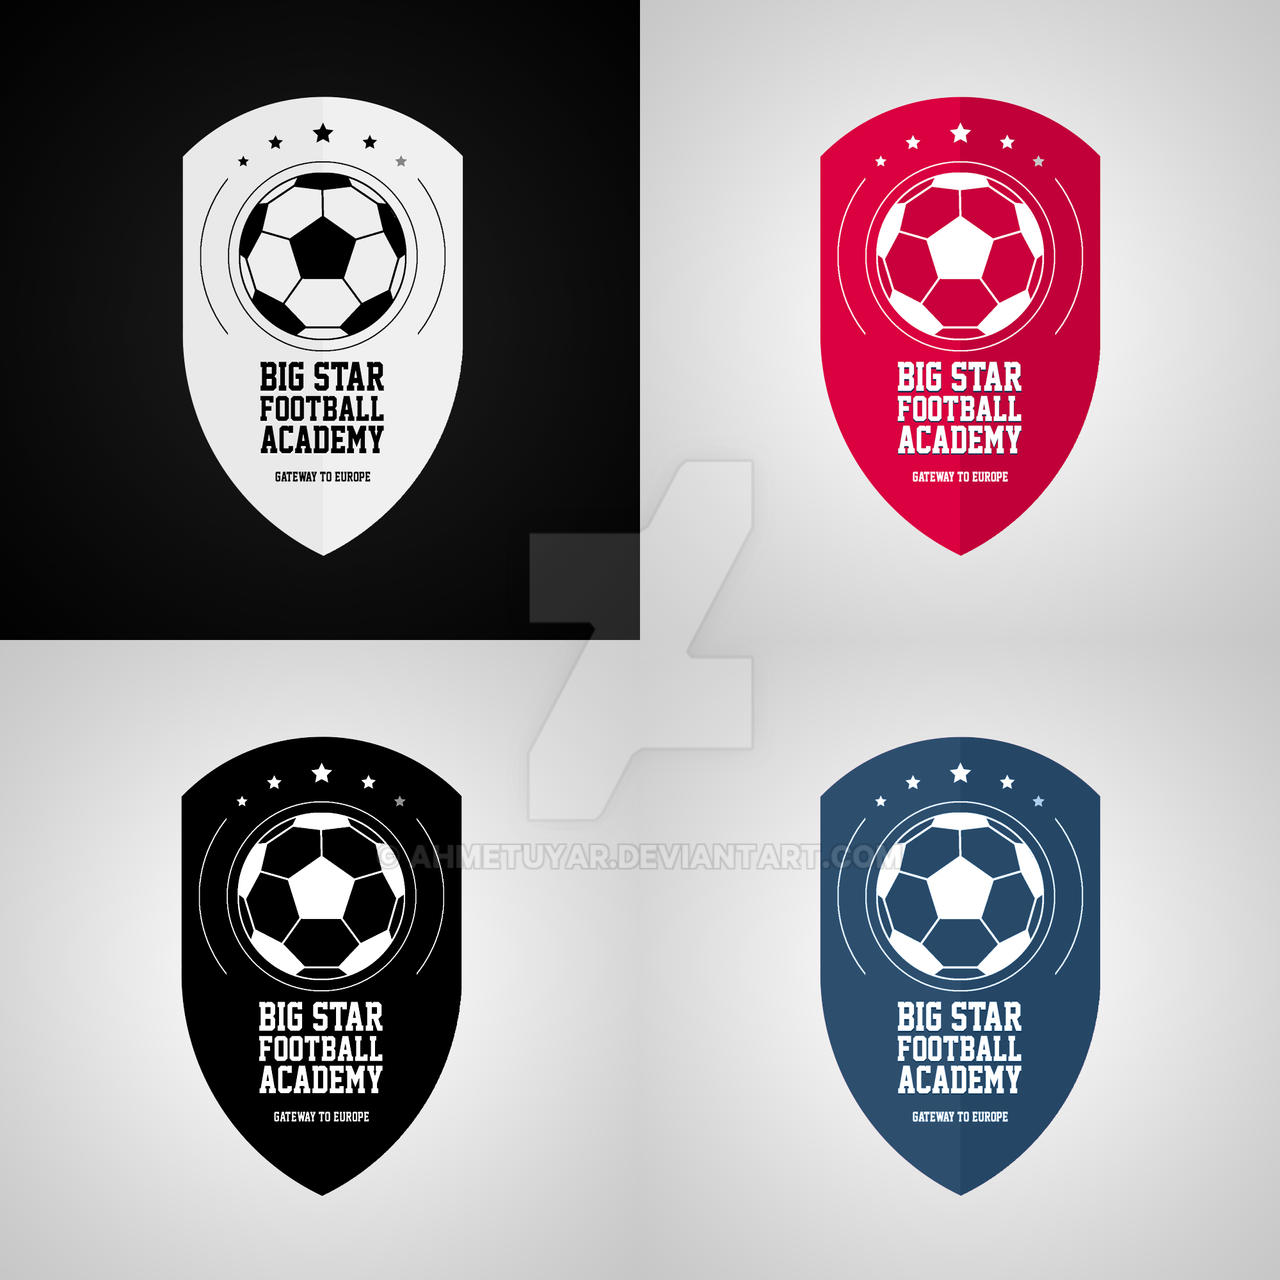 big star football academy logo design by ahmetuyar on deviantart